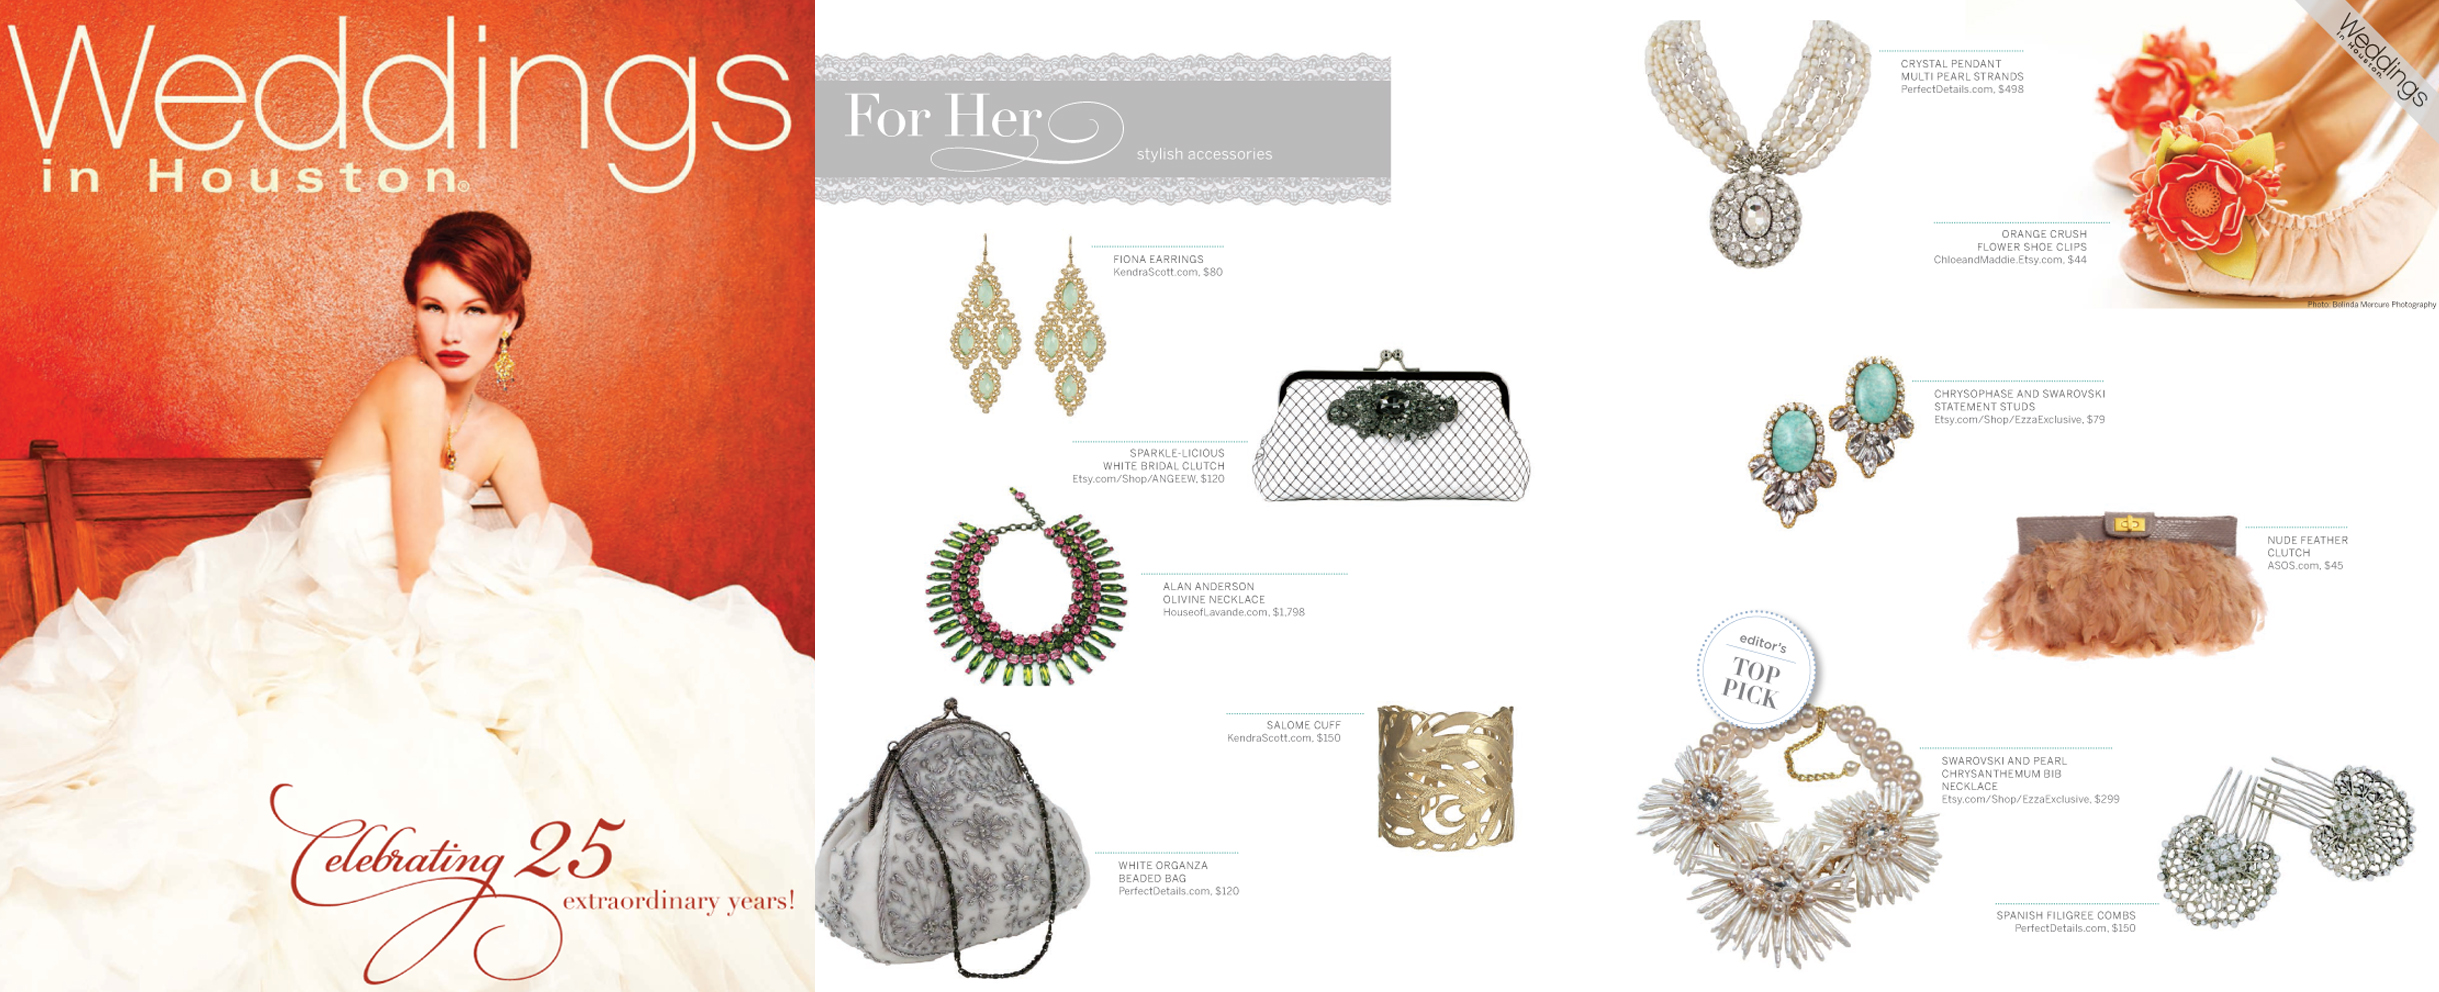 Weddings in Houston - August 2012 | ANGEE W. Clutch Bag Feature